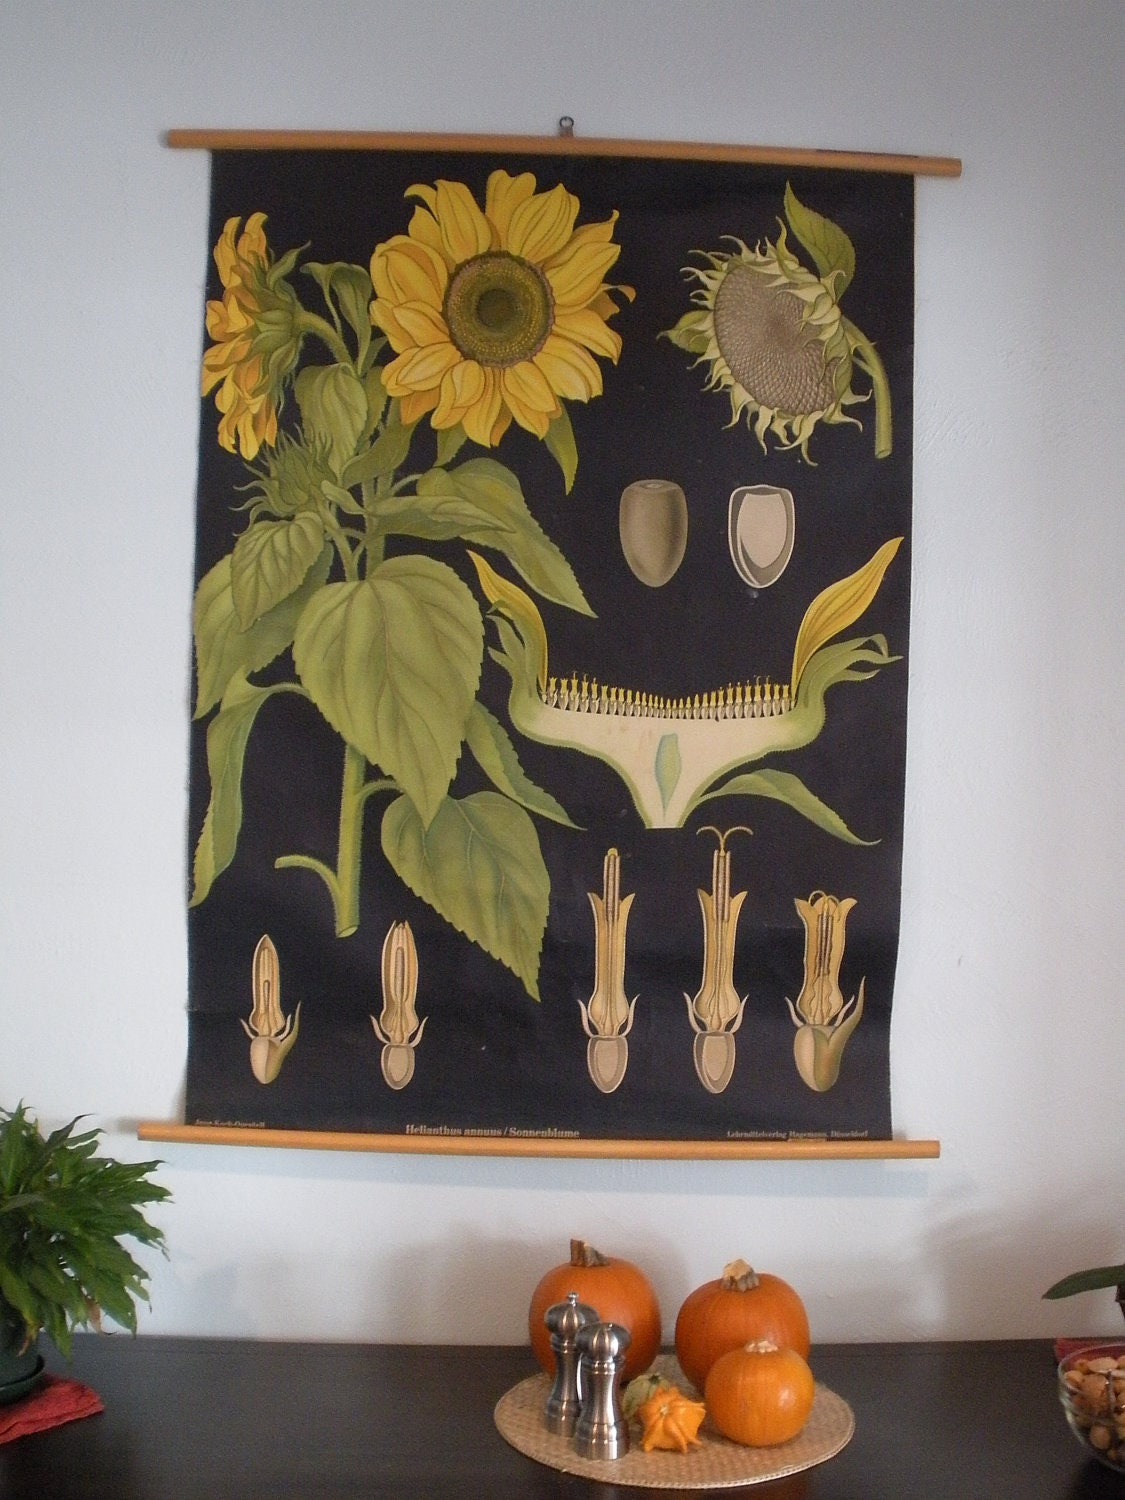 Vintage Sunflower Wall Decor : Sunflower vintage botanical wall hanging roll by silentstories